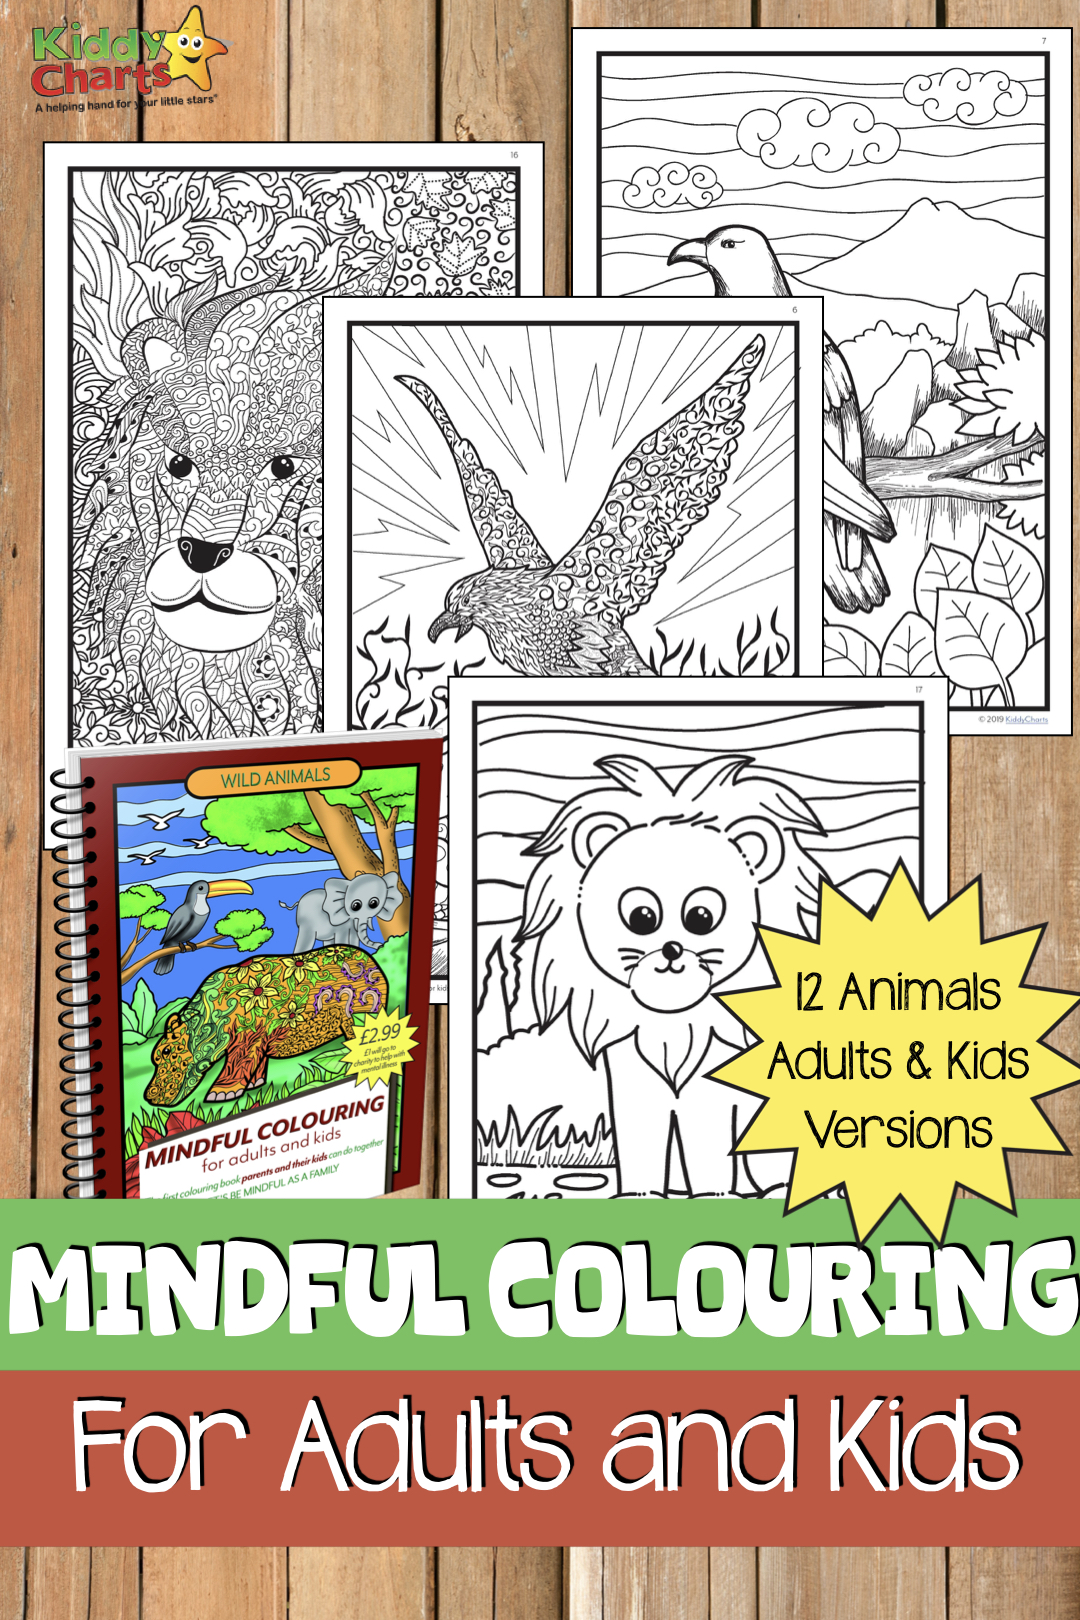 We have a gorgeous colouring book for you - 24 pages, and for the price of a coffee. £1 of which goes to Rethink, the mental health charity. Come on over and take a look! #colouring #coloring #mindfullness #mindful #printables #kids #children #animals #wildanimals #colouringbooks #coloringbooks